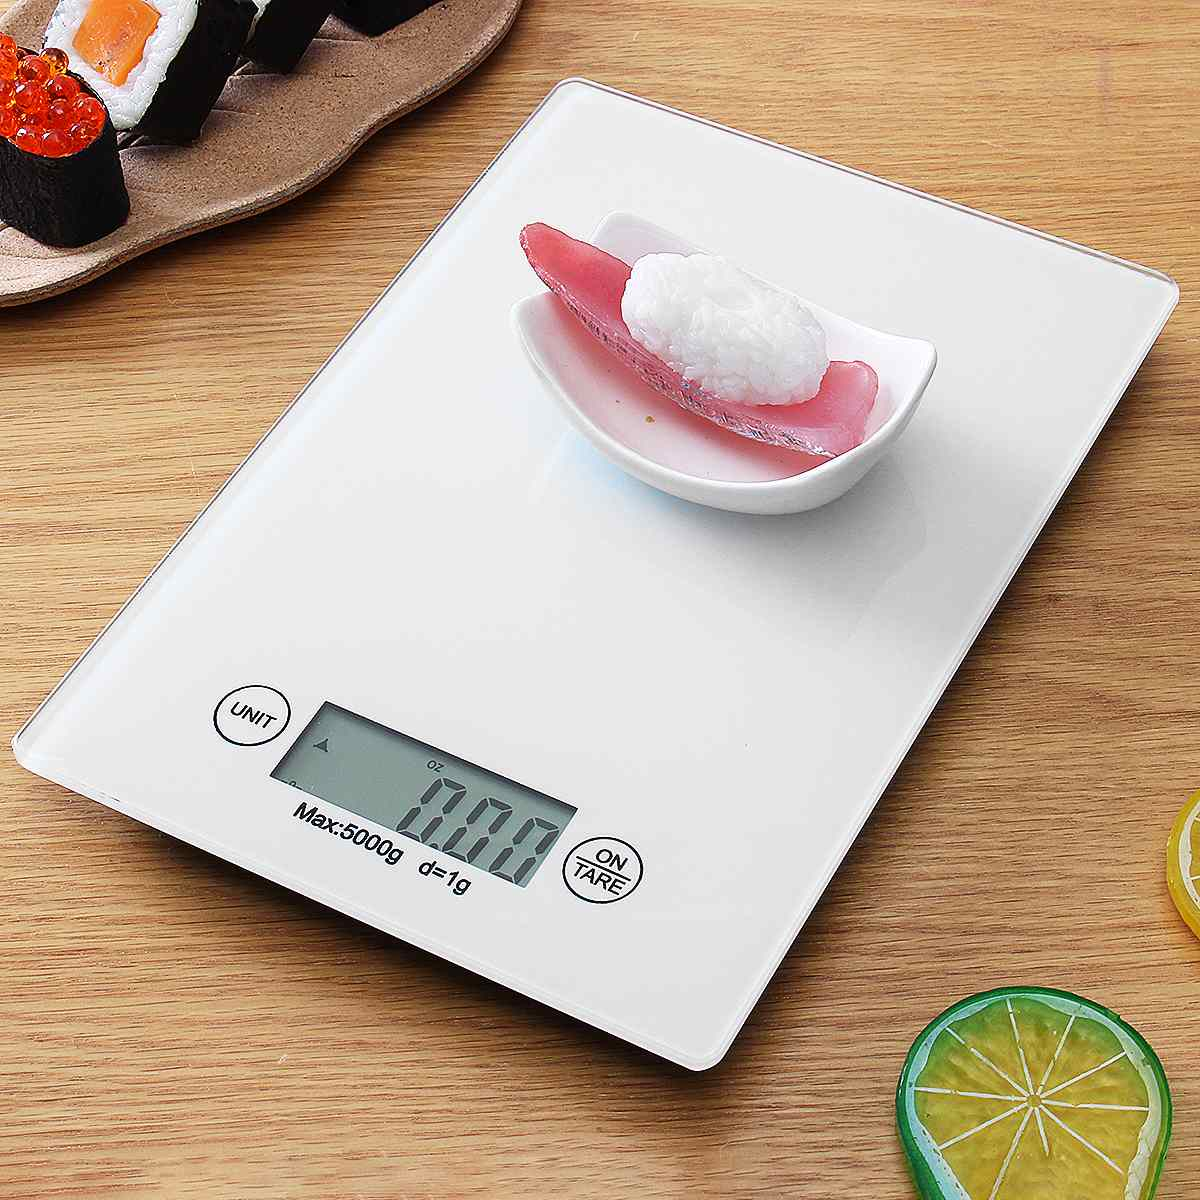 5KG/1g Baking Weighting Scale LCD Digital Kitchen Scales Electronic Weight Scale Food Household Measuring Tool